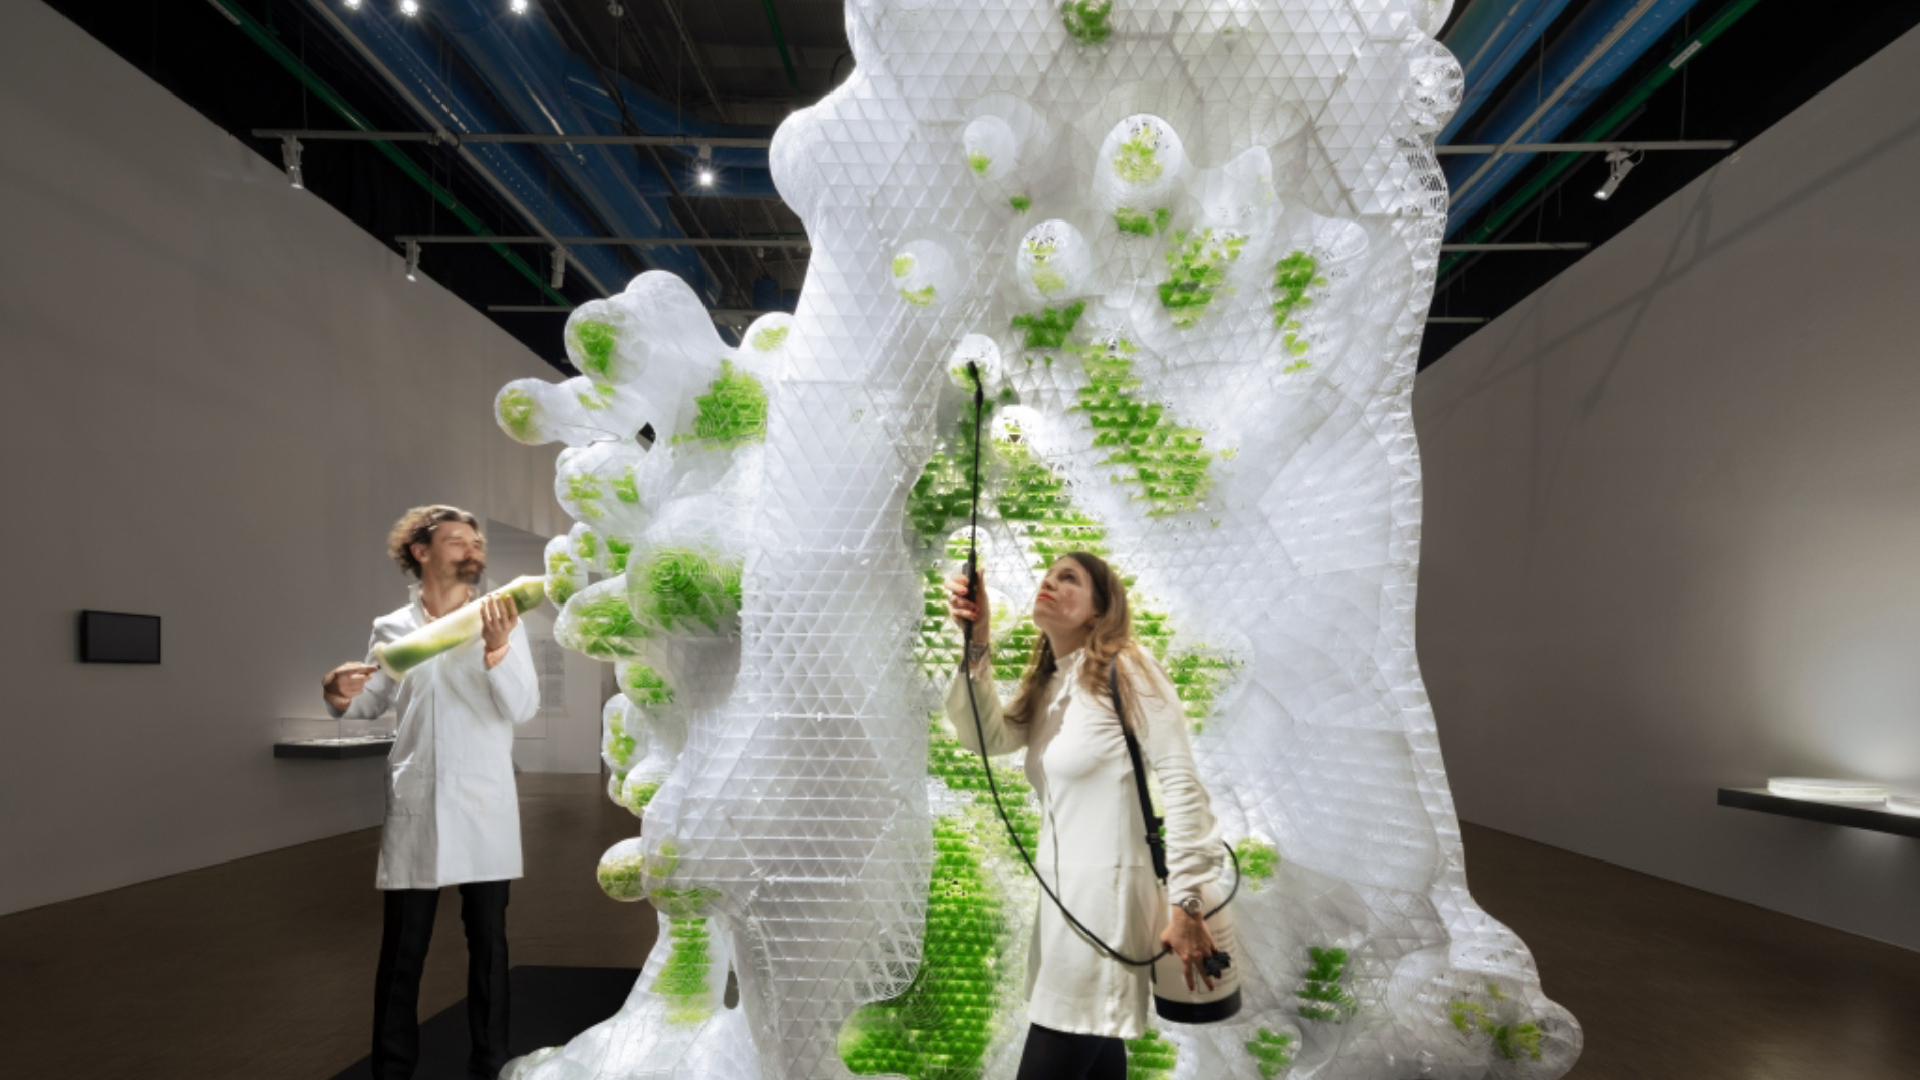 A 3D printed bio-structure conceptualised by ecoLogicStudio, previously seen at Centre Pompidou | Future and the Arts: AI, Robotics, Cities, Life - How Humanity Will Live Tomorrow | Mori Art Museum | STIRworld